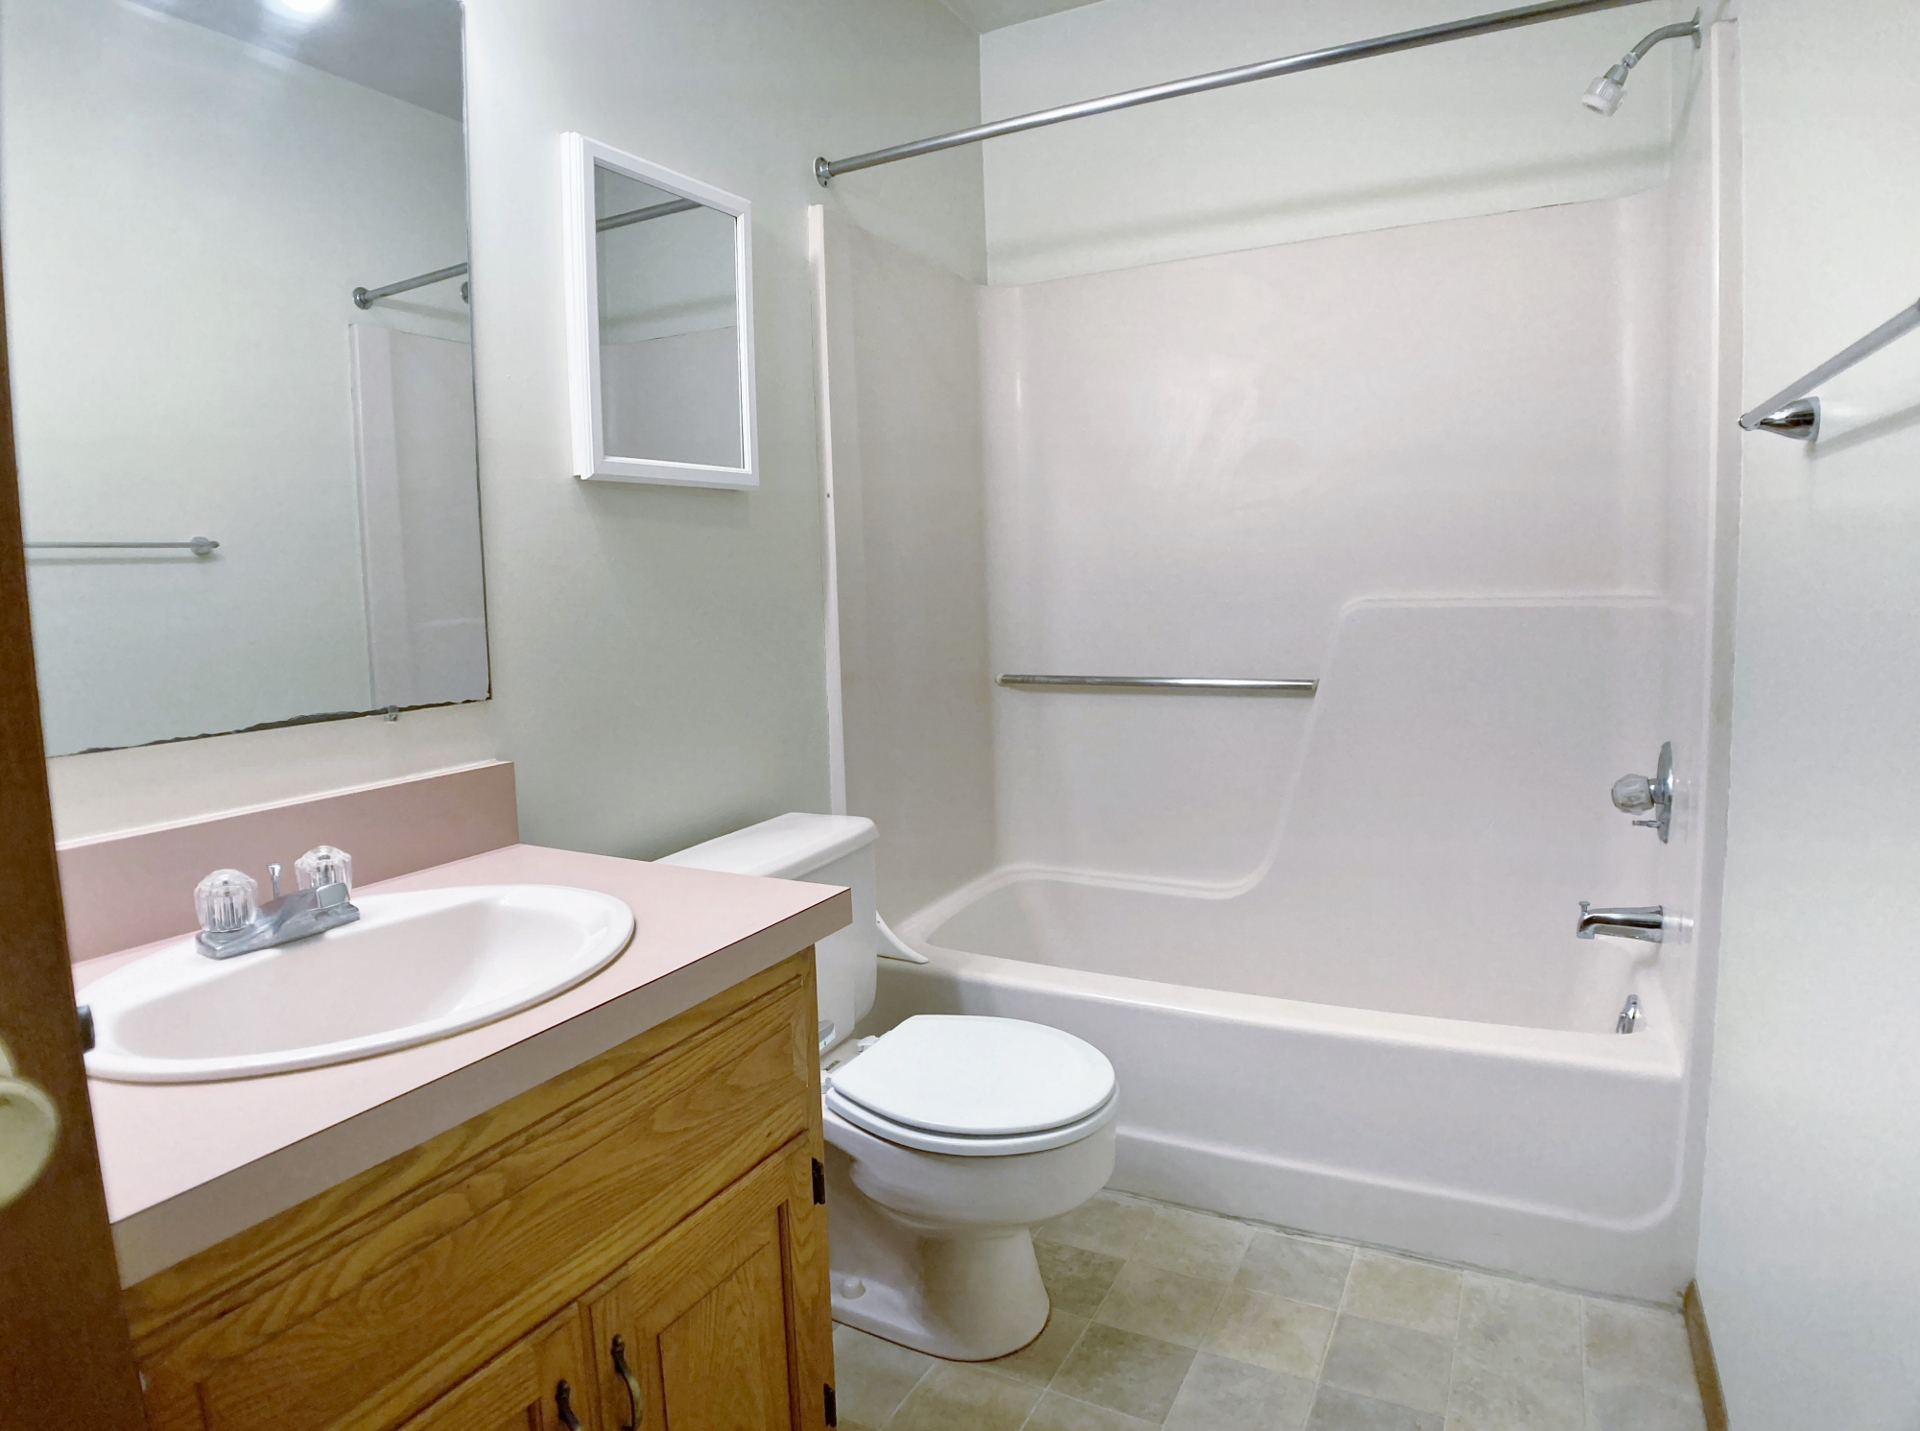 2480 Buchenhorst Road Bathroom